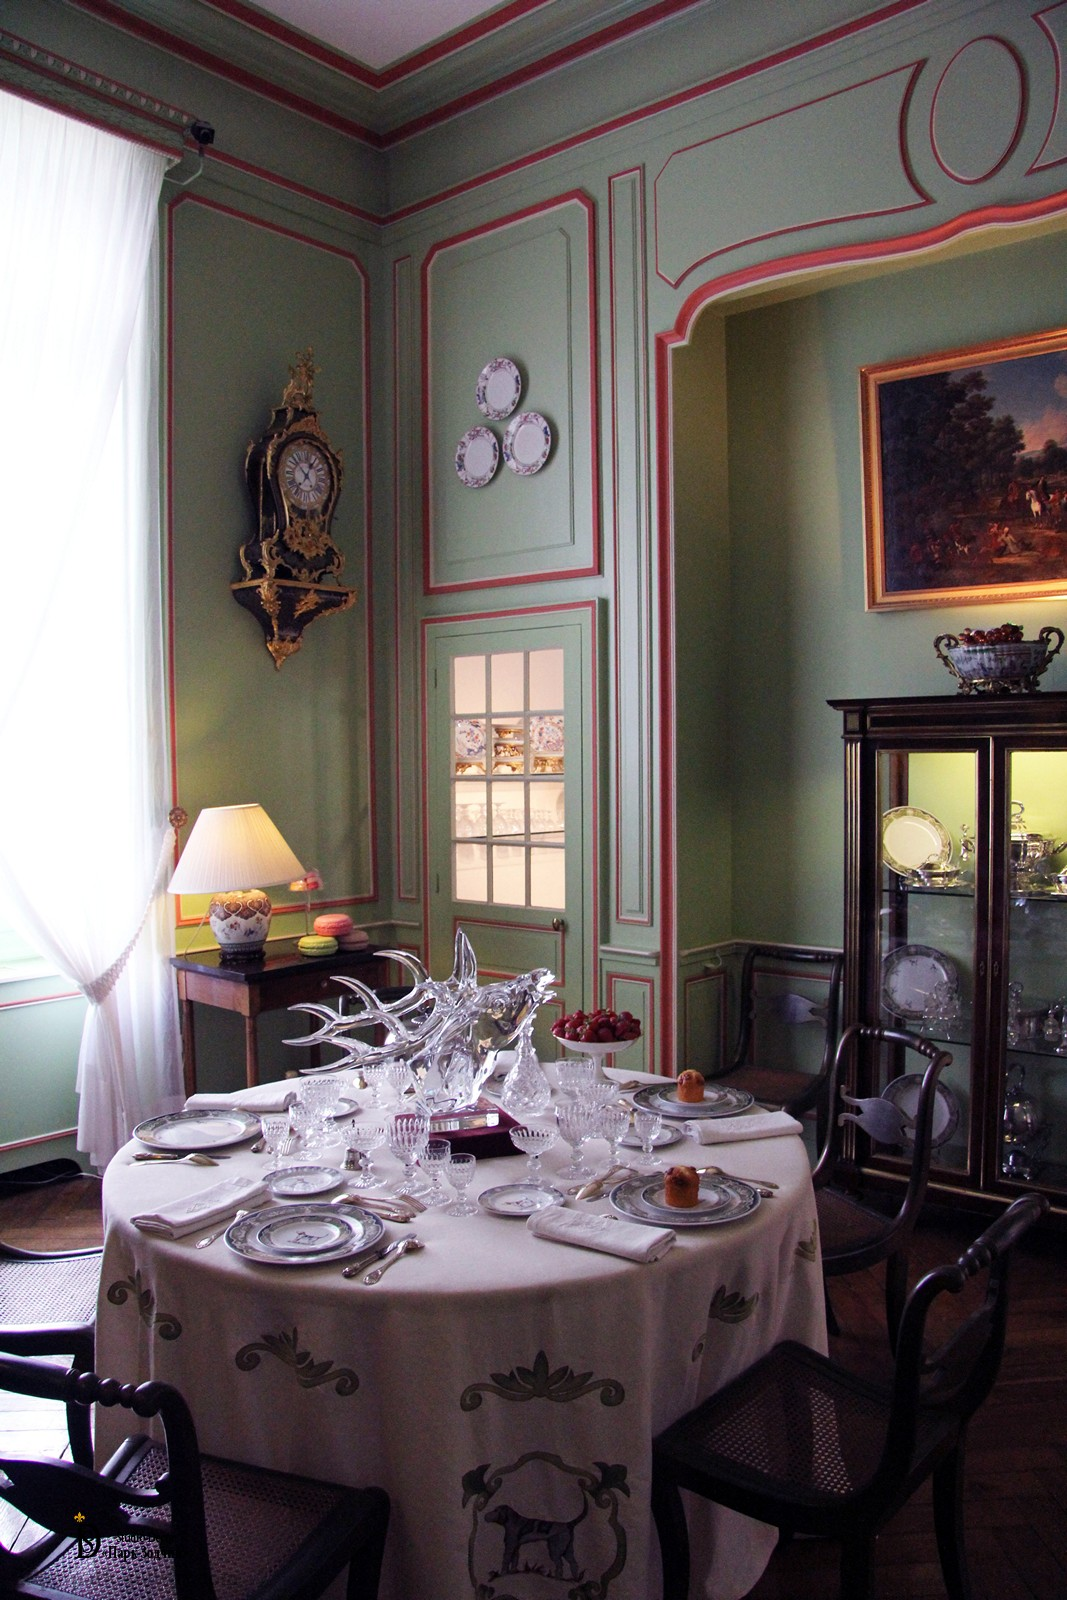 Provence style dining room, unusual decoration